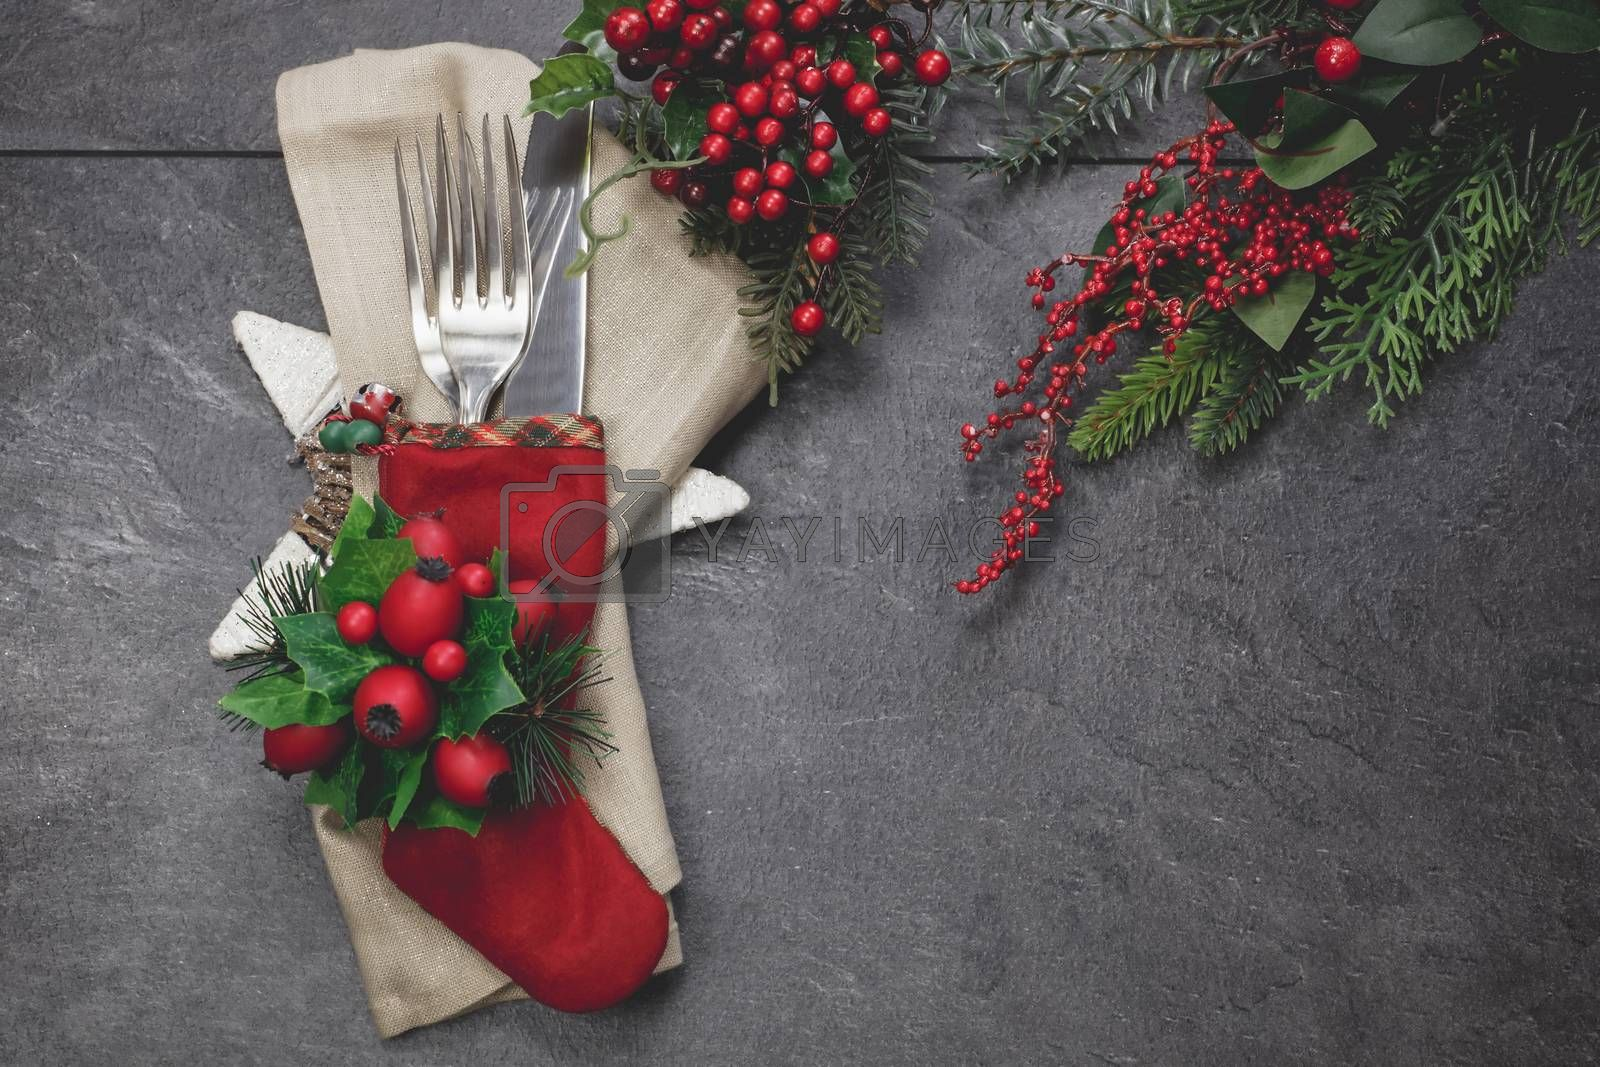 Christmas stocking place settings with festive decorations.Christmas vintage concept. Copy space for your text